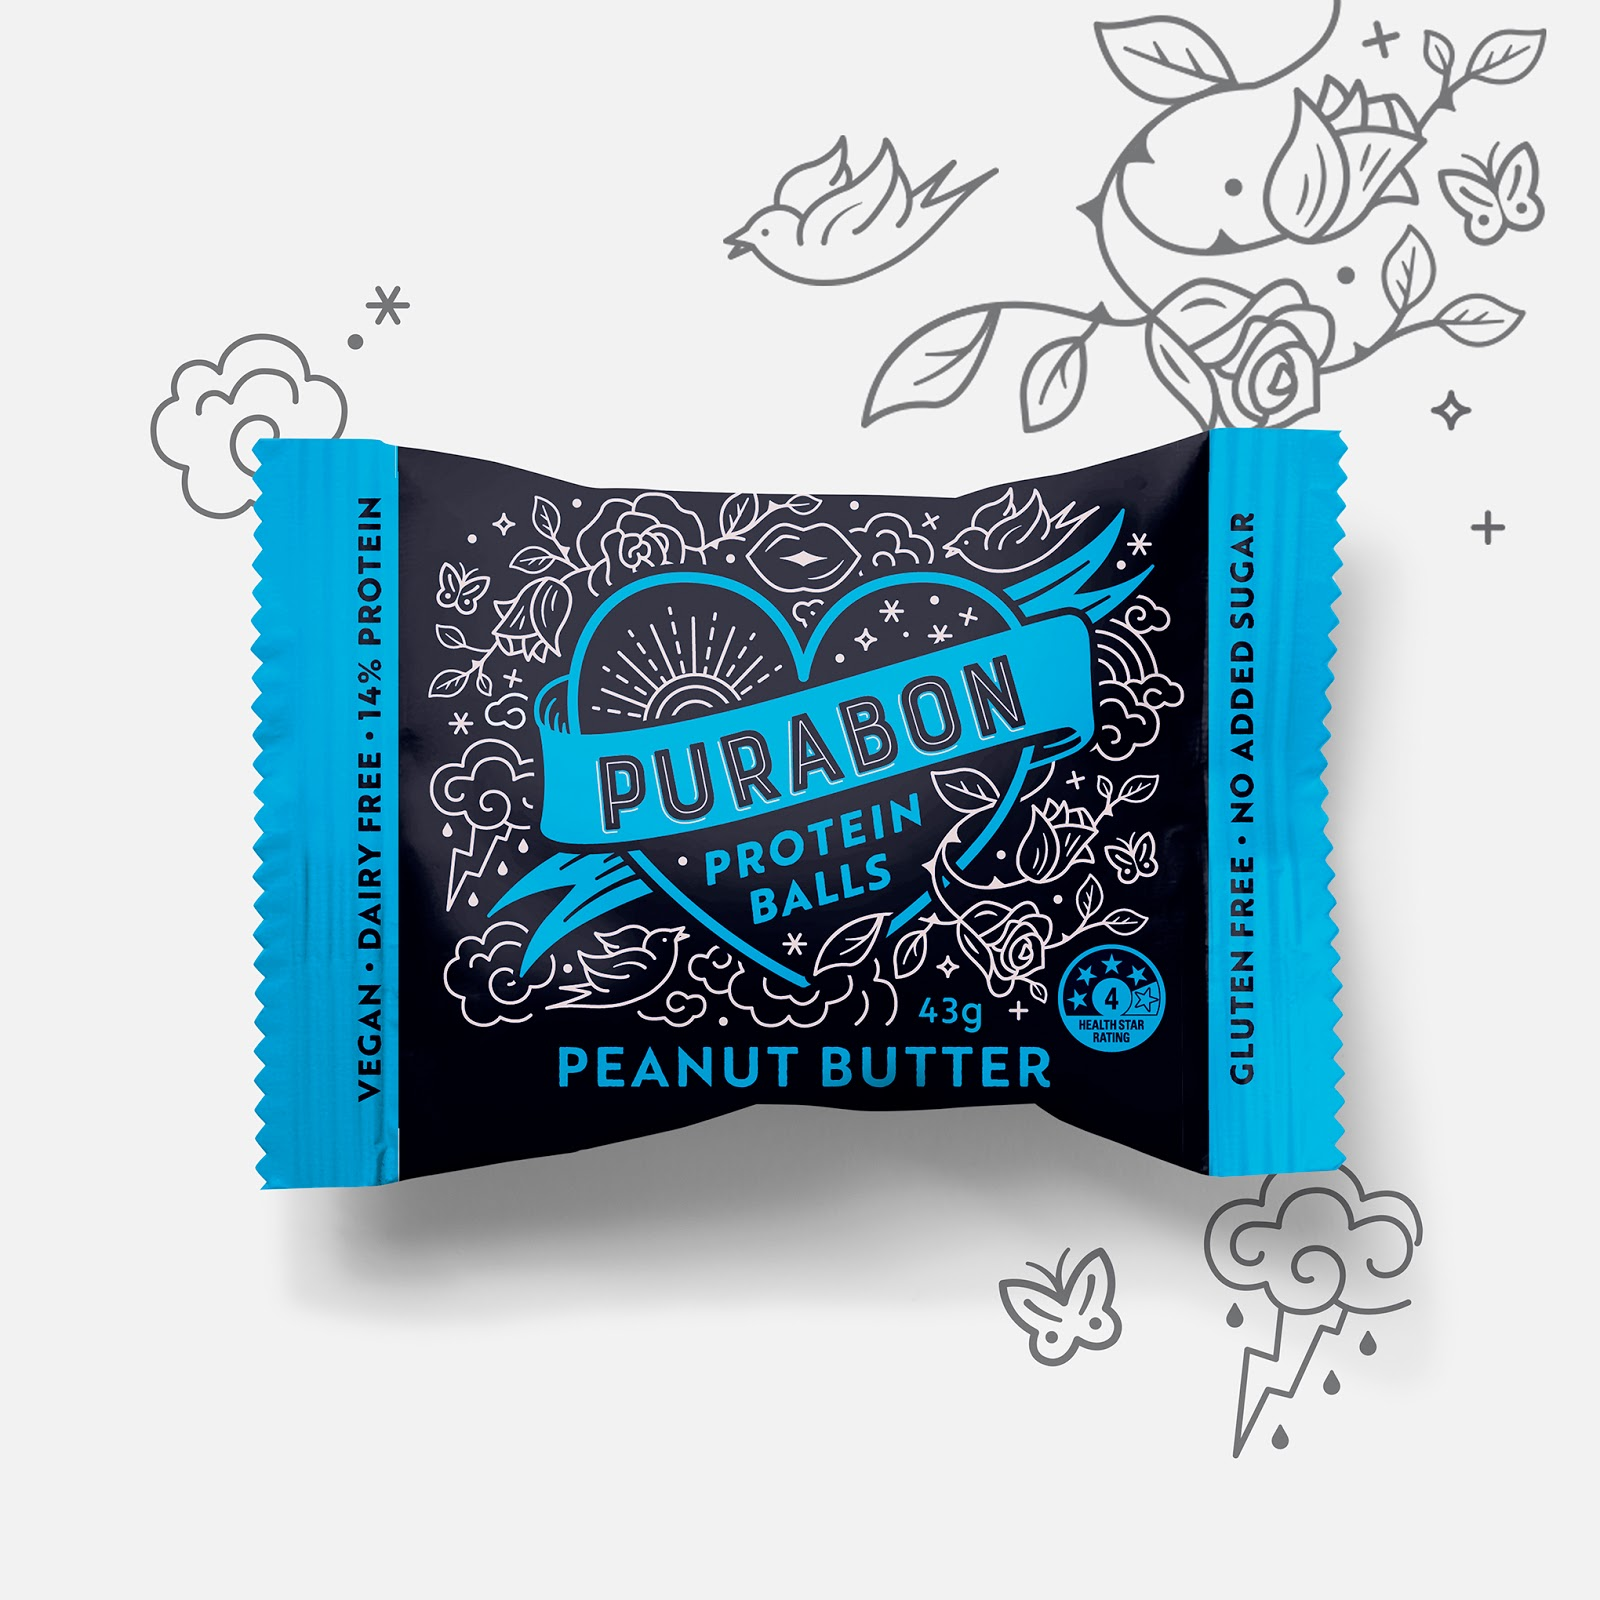 Purabon Protein Balls On Packaging Of The World Creative Package Design Gallery